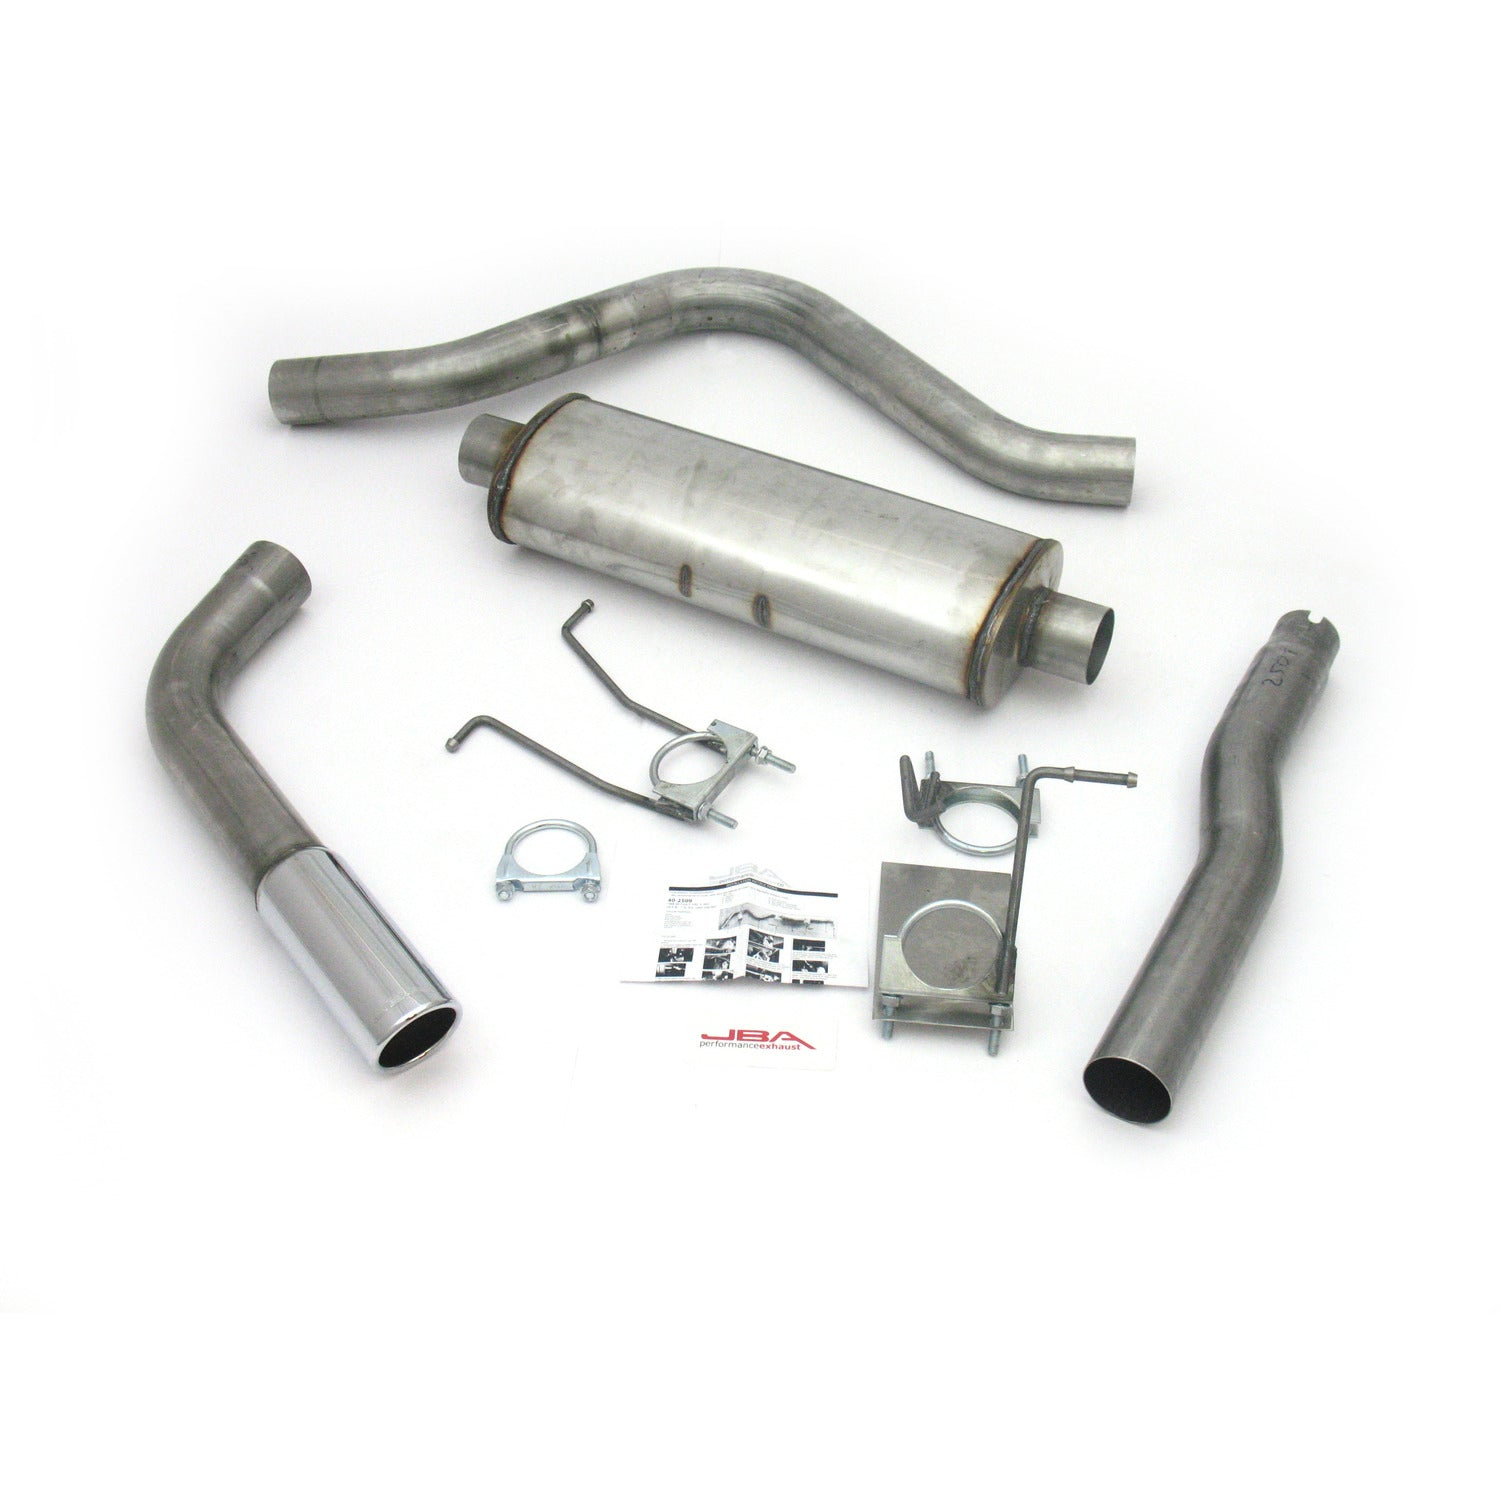 "JBA Performance Exhaust 40-2509 3"" Stainless Steel Exhaust System 87-96 Ford Super Cab Long Bed"